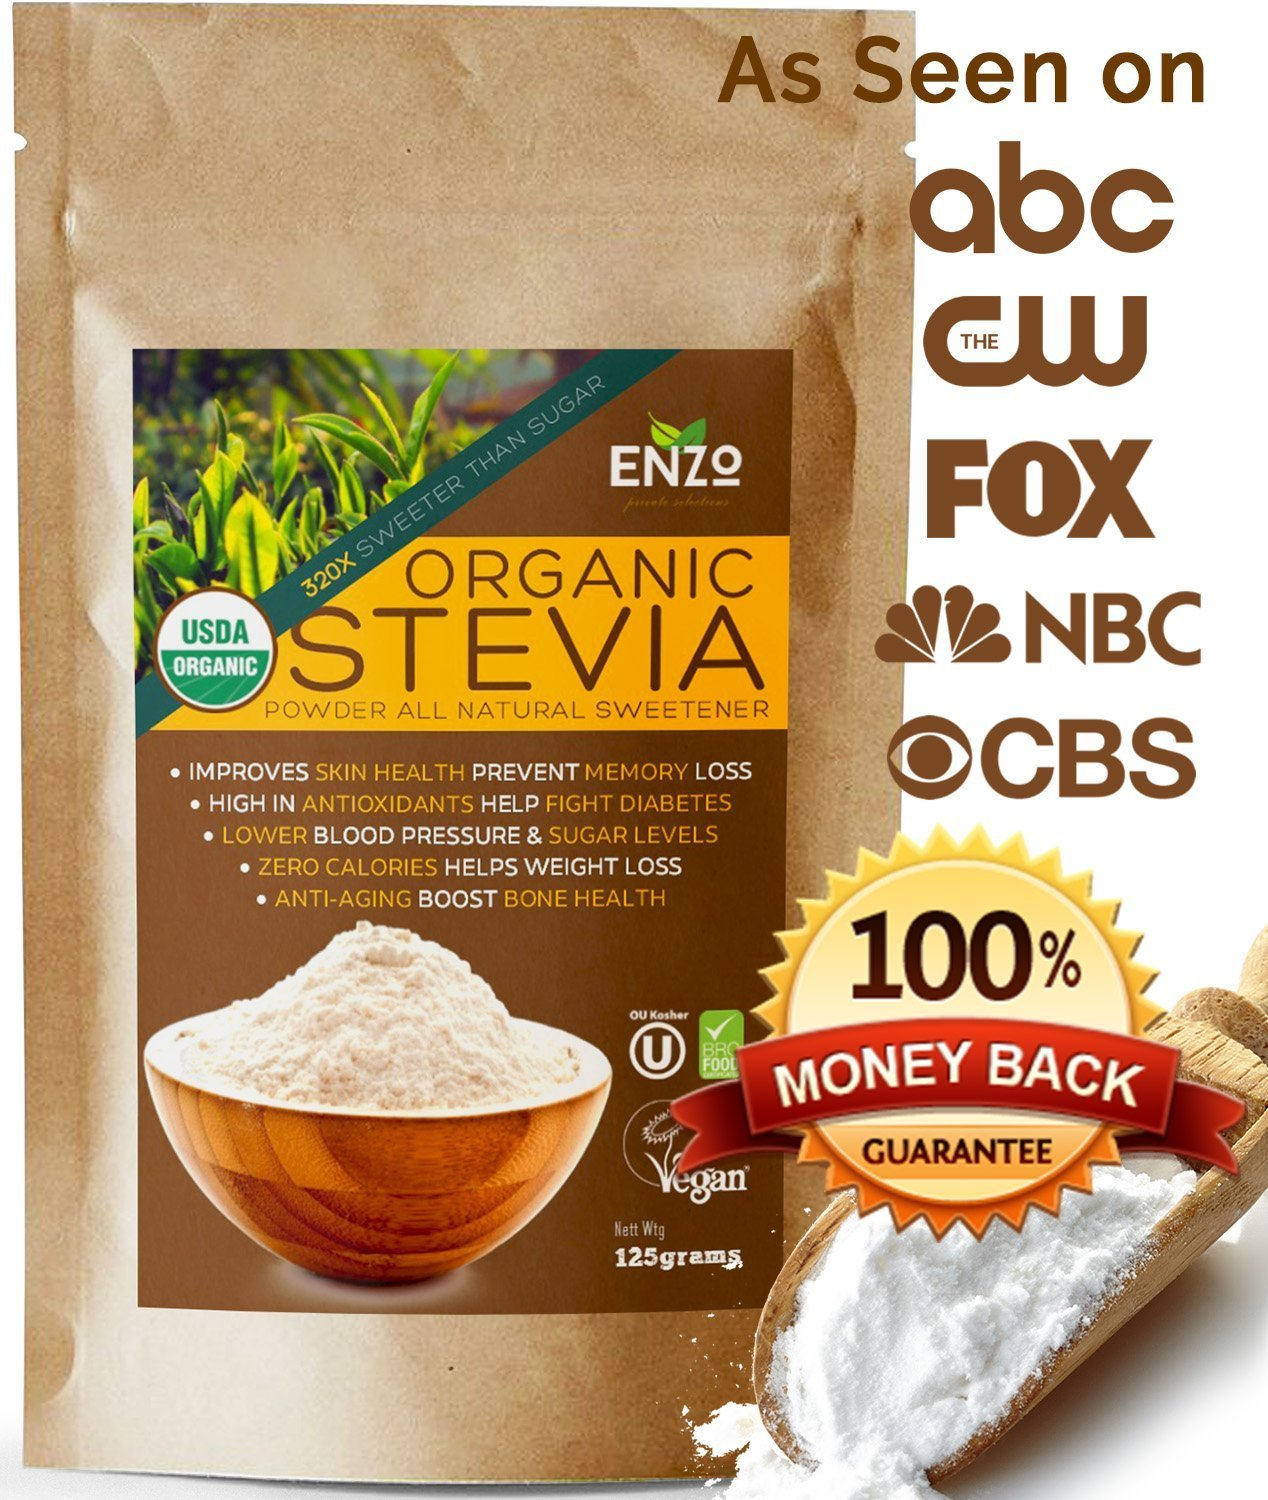 Organic Stevia Powder 125g (4.4oz/3125 Servings) Premium USDA Certified All Natural Alternative Sweetener 320x Sugar Free Non-GMO 0 Calories Vegan No Aftertaste Kosher No additives & fillers Extract by Enzo's Private Selection